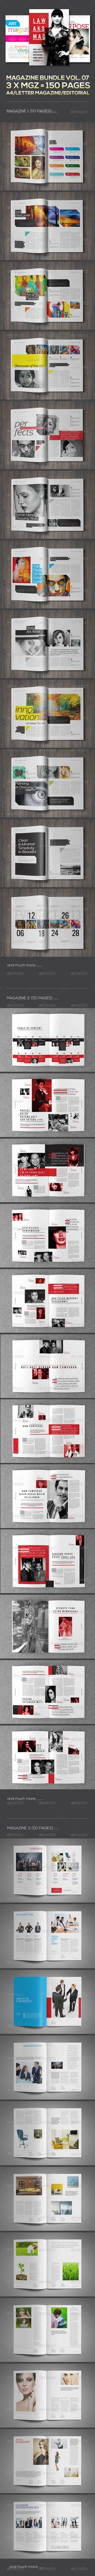 3 X Magazine Collection (Mgz Bundle Vol. 07)  #GraphicRiver        Click image below for detail preview!    Other Bundle Collection :                           Created: 5 December 13                    Graphics Files Included:   InDesign INDD                   Layered:   Yes                   Minimum Adobe CS Version:   CS4                   Print Dimensions:   21x29.7             Tags      bundle #corporate #decor #design #elegant #fashion #flexible #fresh #home #indesign magazine #interior…